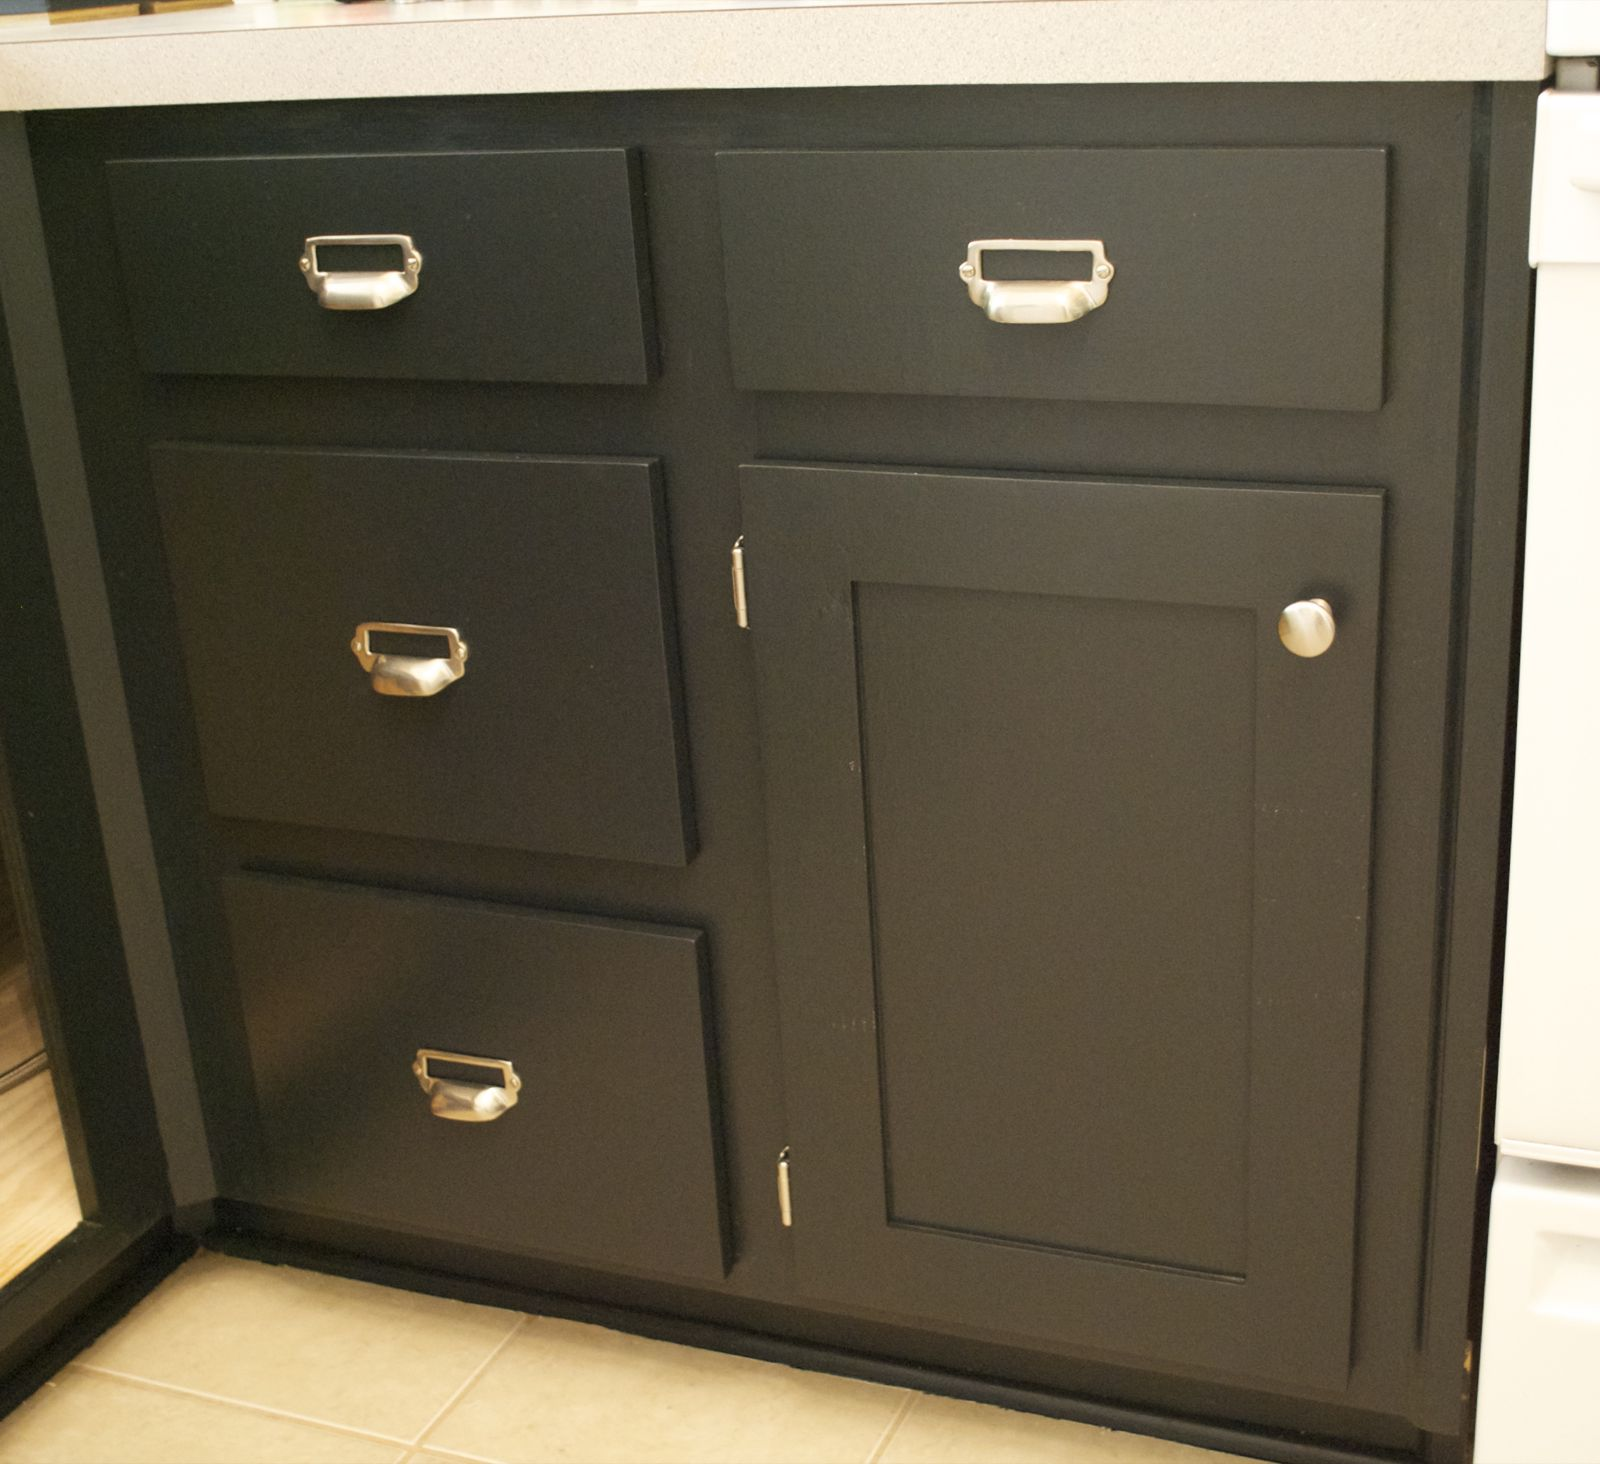 Lower Kitchen Cabinets: Low Country Living: Cabinet Doors